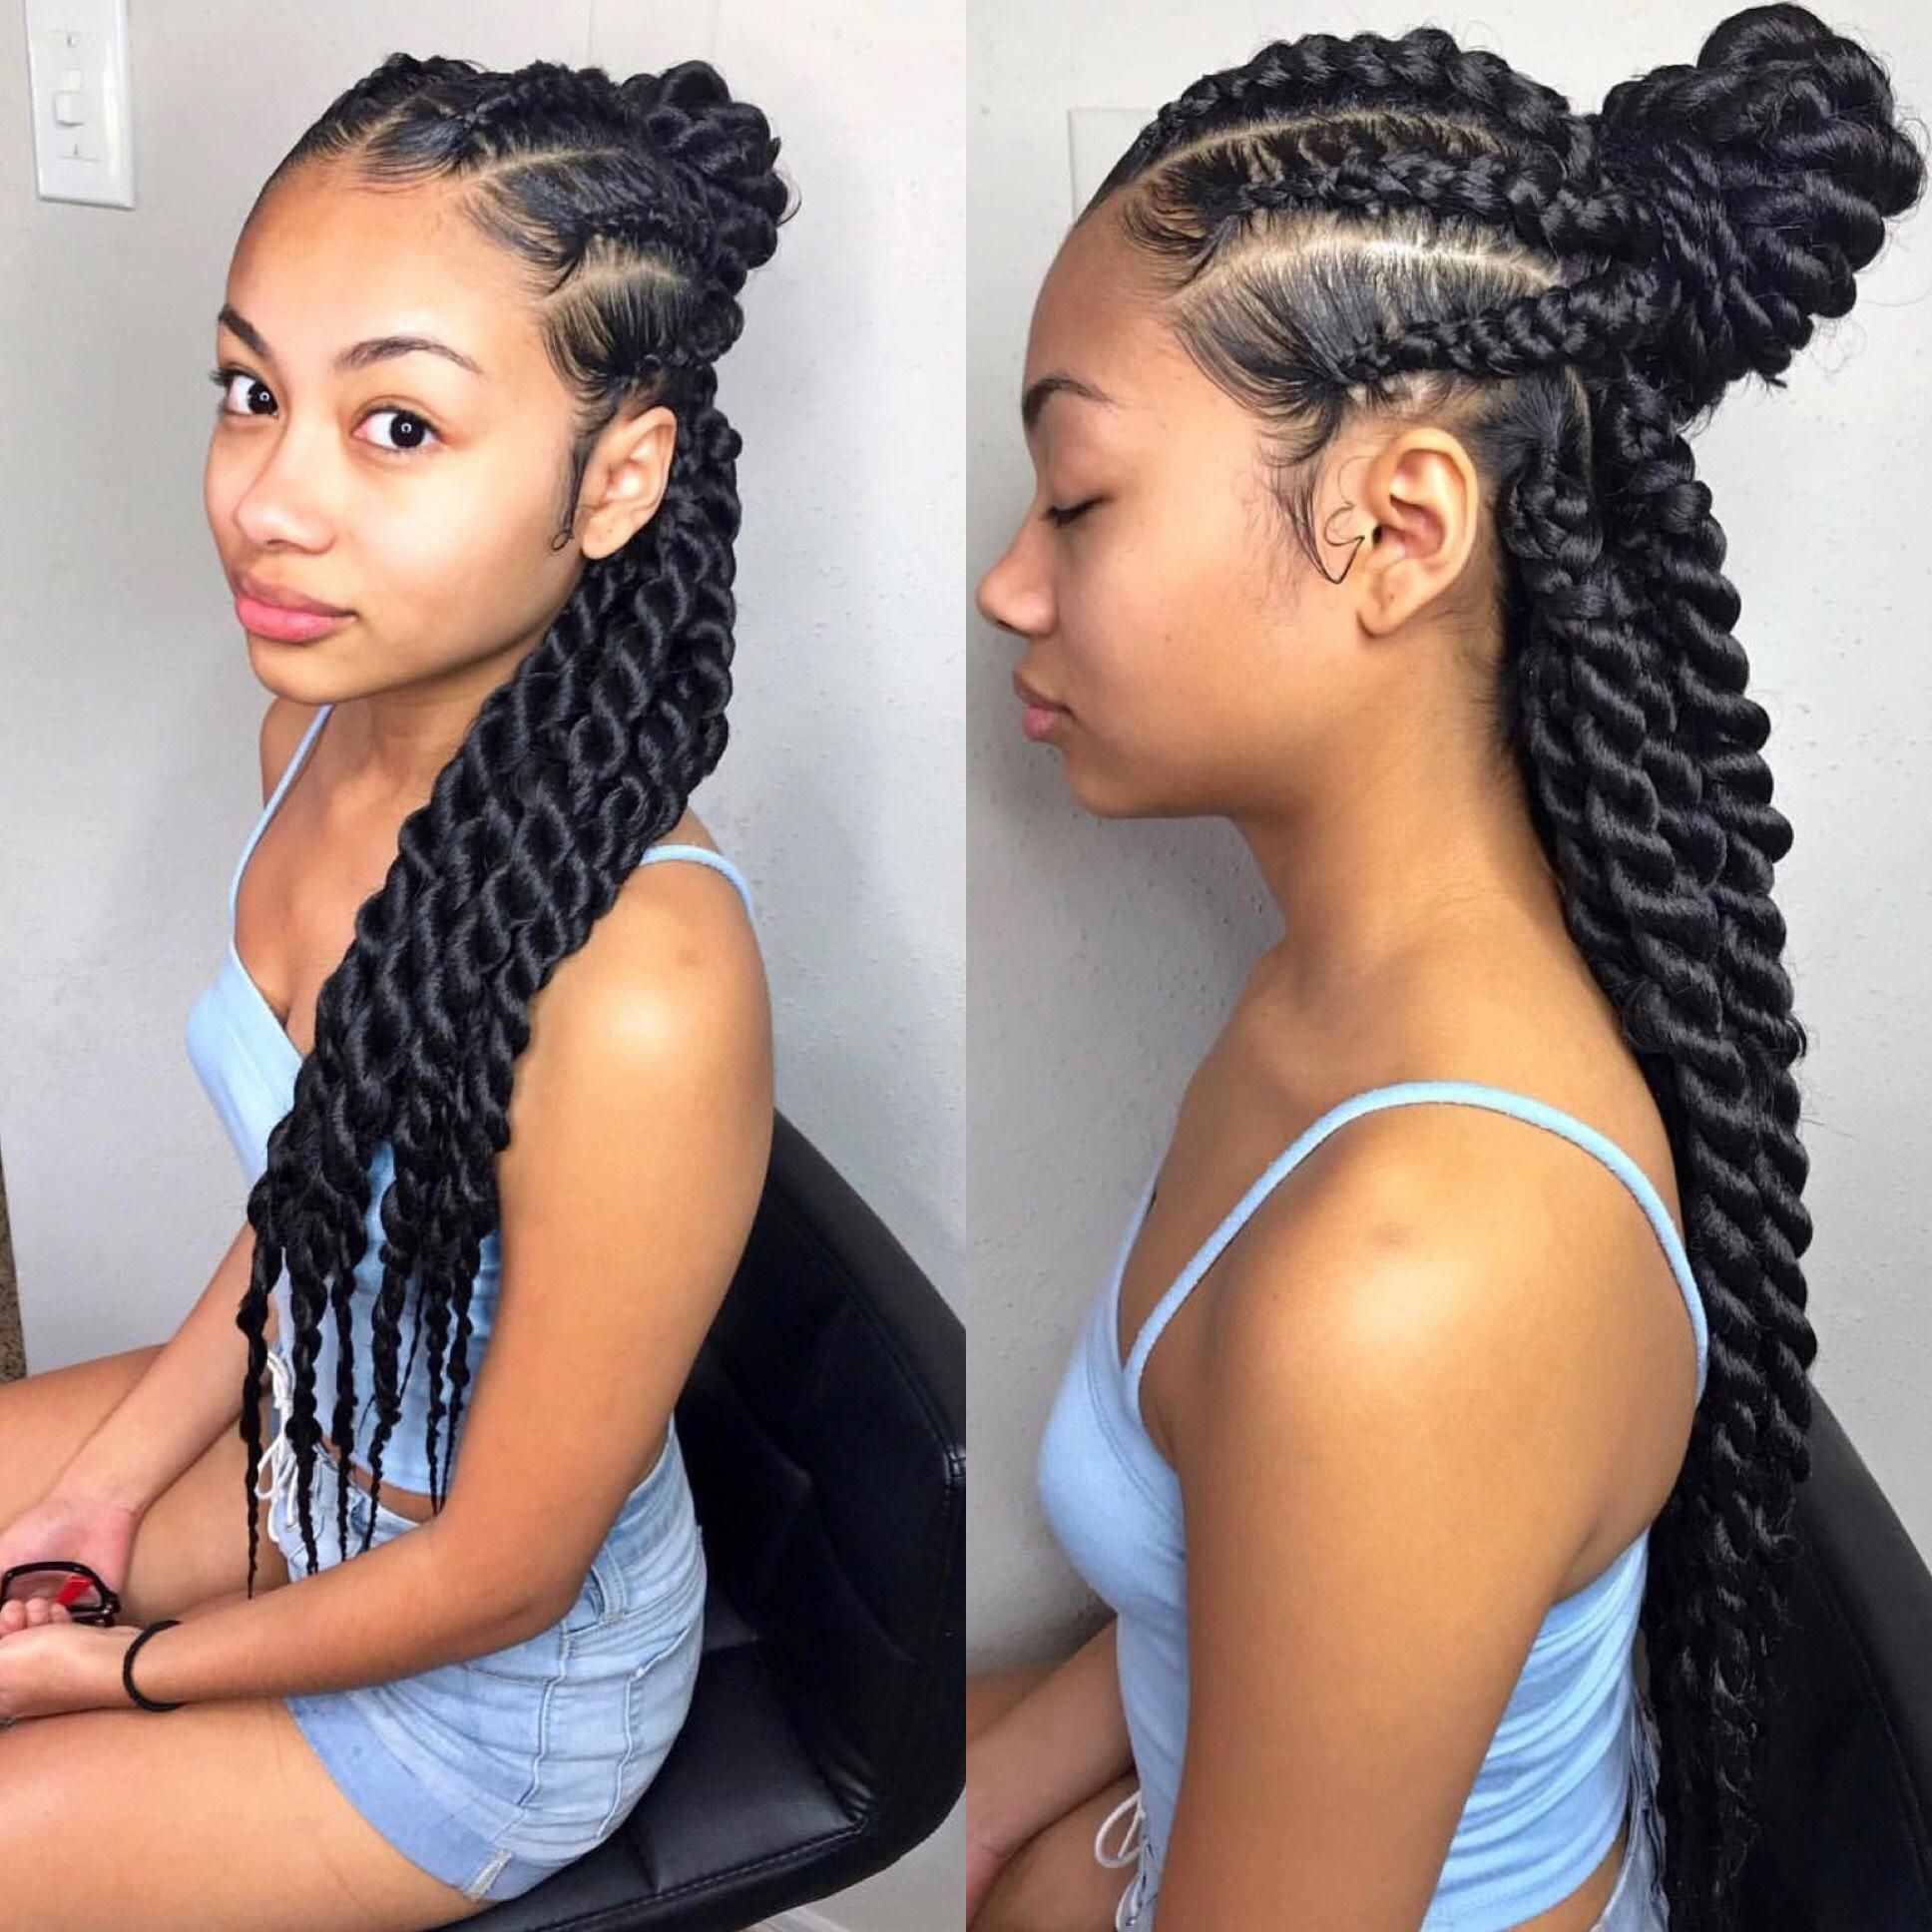 Latest Braided Hairstyle Shortbraidedhairstyles Half Braided Hairstyles Natural Hair Styles Cool Braid Hairstyles